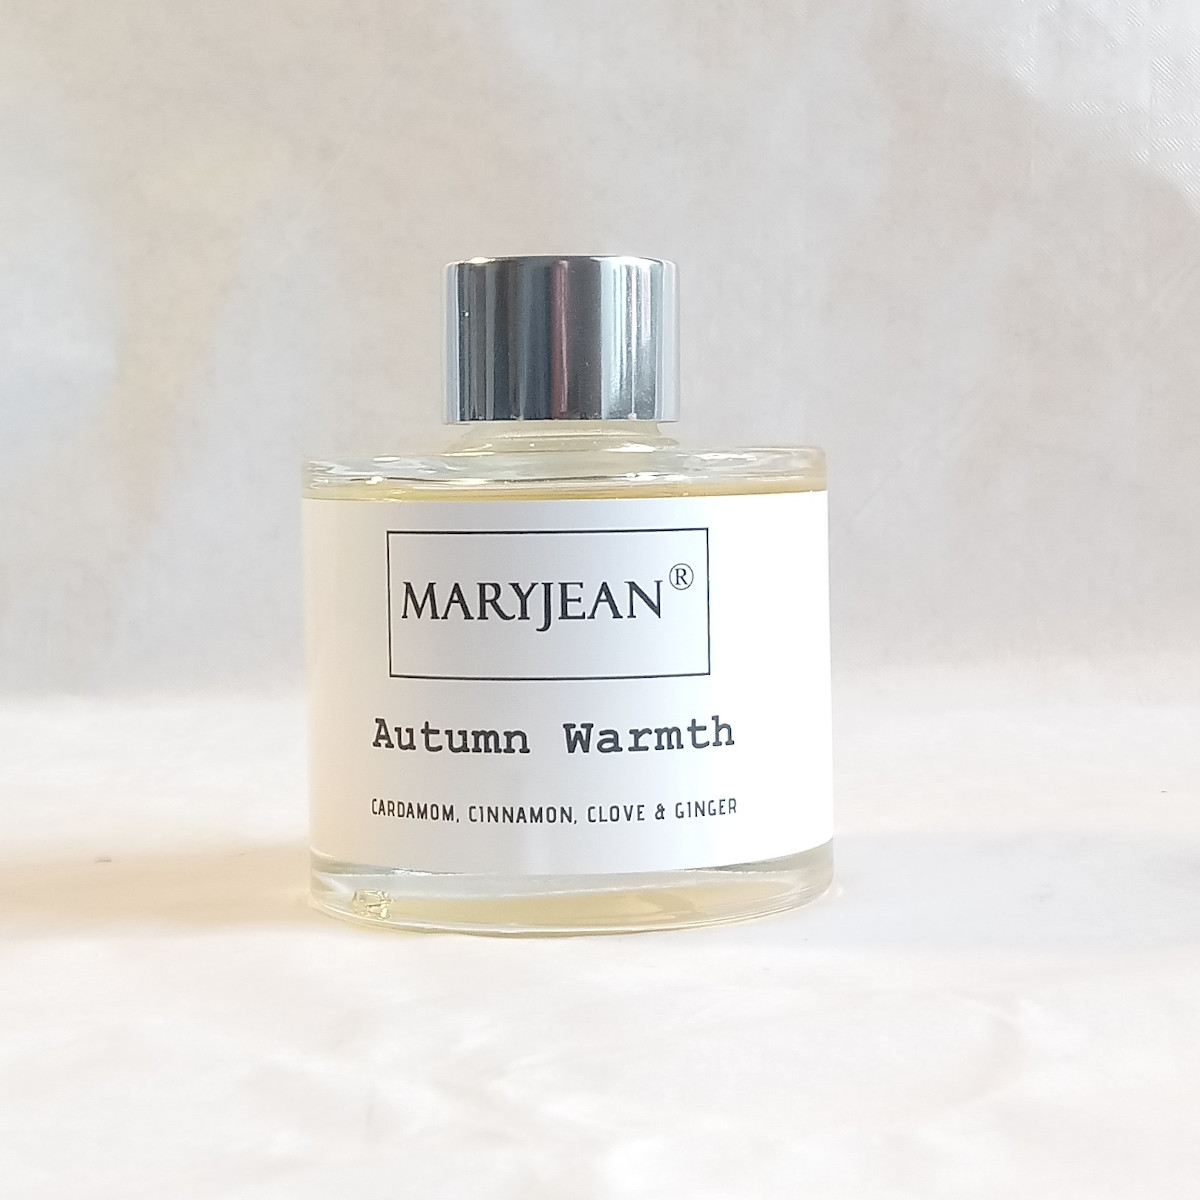 Natural Home Season's Autumn And Winter Fragrance Handmade Luxury Reed Diffusers Twin 2 Pack Ensuring your home or office space is clear and pure with a seasonal Autumn and Winter natural fragrance with our signature Home Season home fragrance